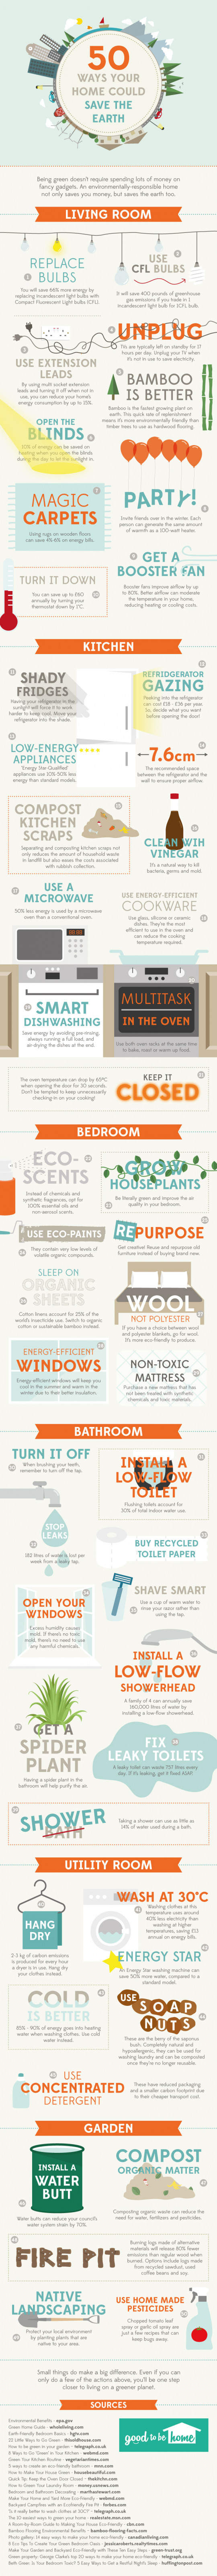 50 Ways Your Home Could Save The Planet